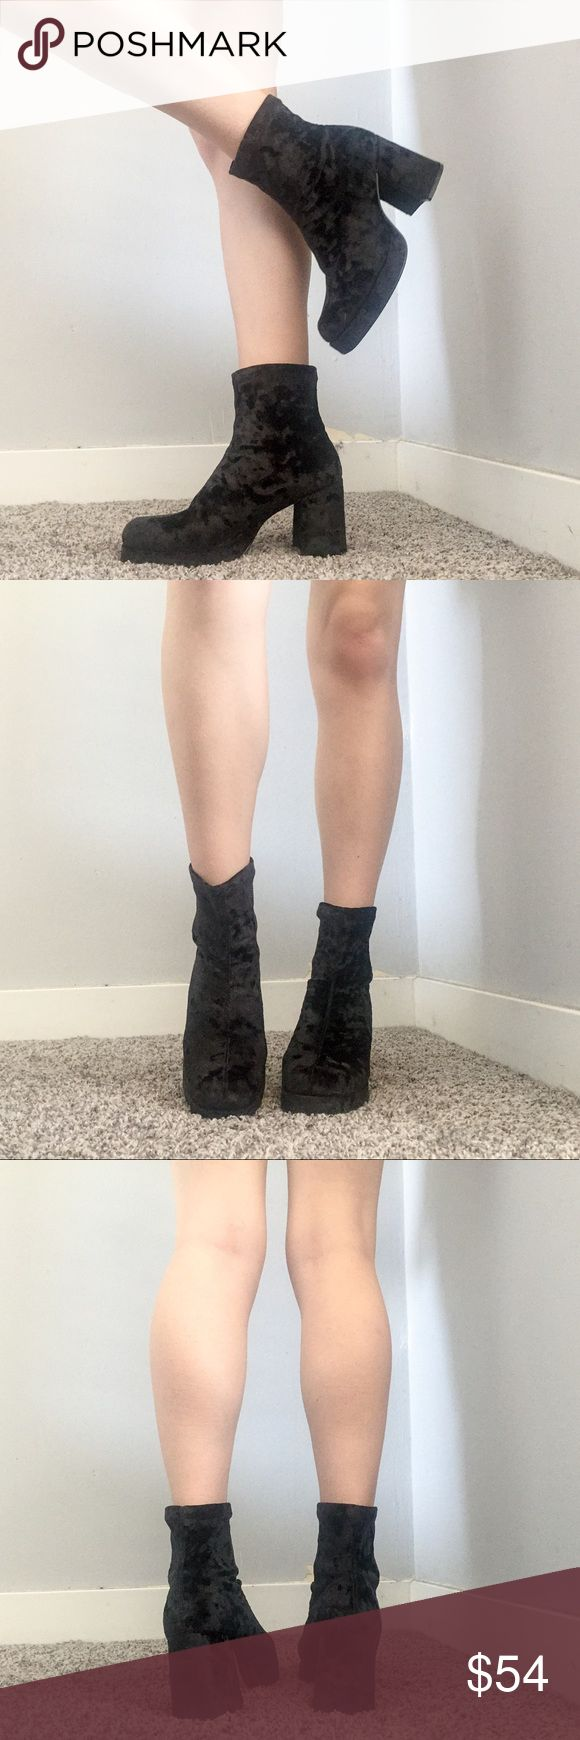 Vintage 90s Black Velvet Platform Boots Black crushed velvet platform sock boots by High Lights. Pre-loved but in great condition. Note: these are vintage, and the aging glue may cause the sole to separate from the shoe. Be sure to keep a bottle of Shoe Goo on hand for an easy fix. Vintage Shoes Ankle Boots & Booties